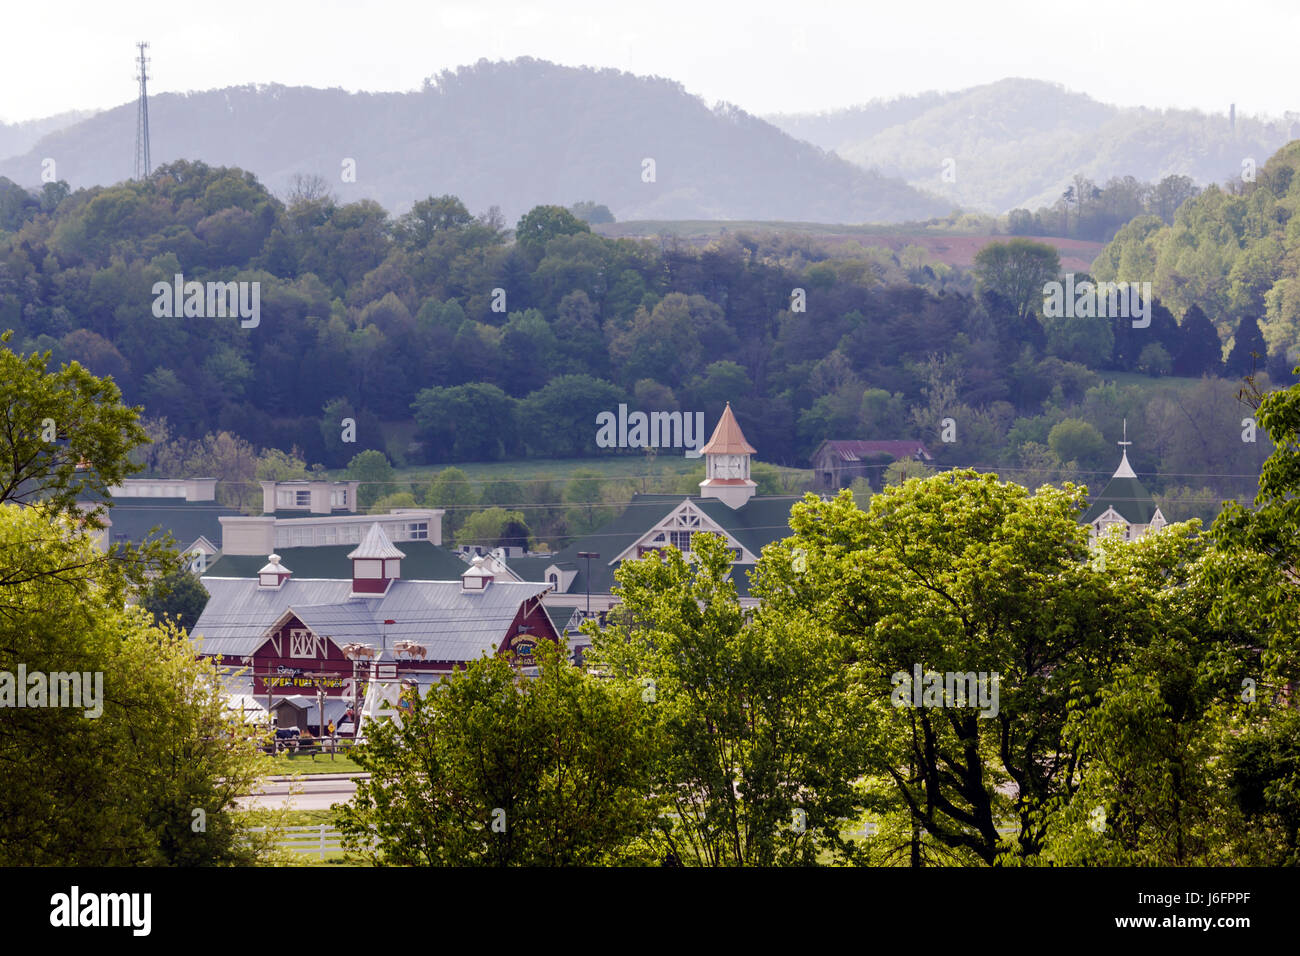 Tennessee Sevierville Tanger Five Oaks Factory Outlet exterior shopping center scenery Smoky Mountains foothills - Stock Image